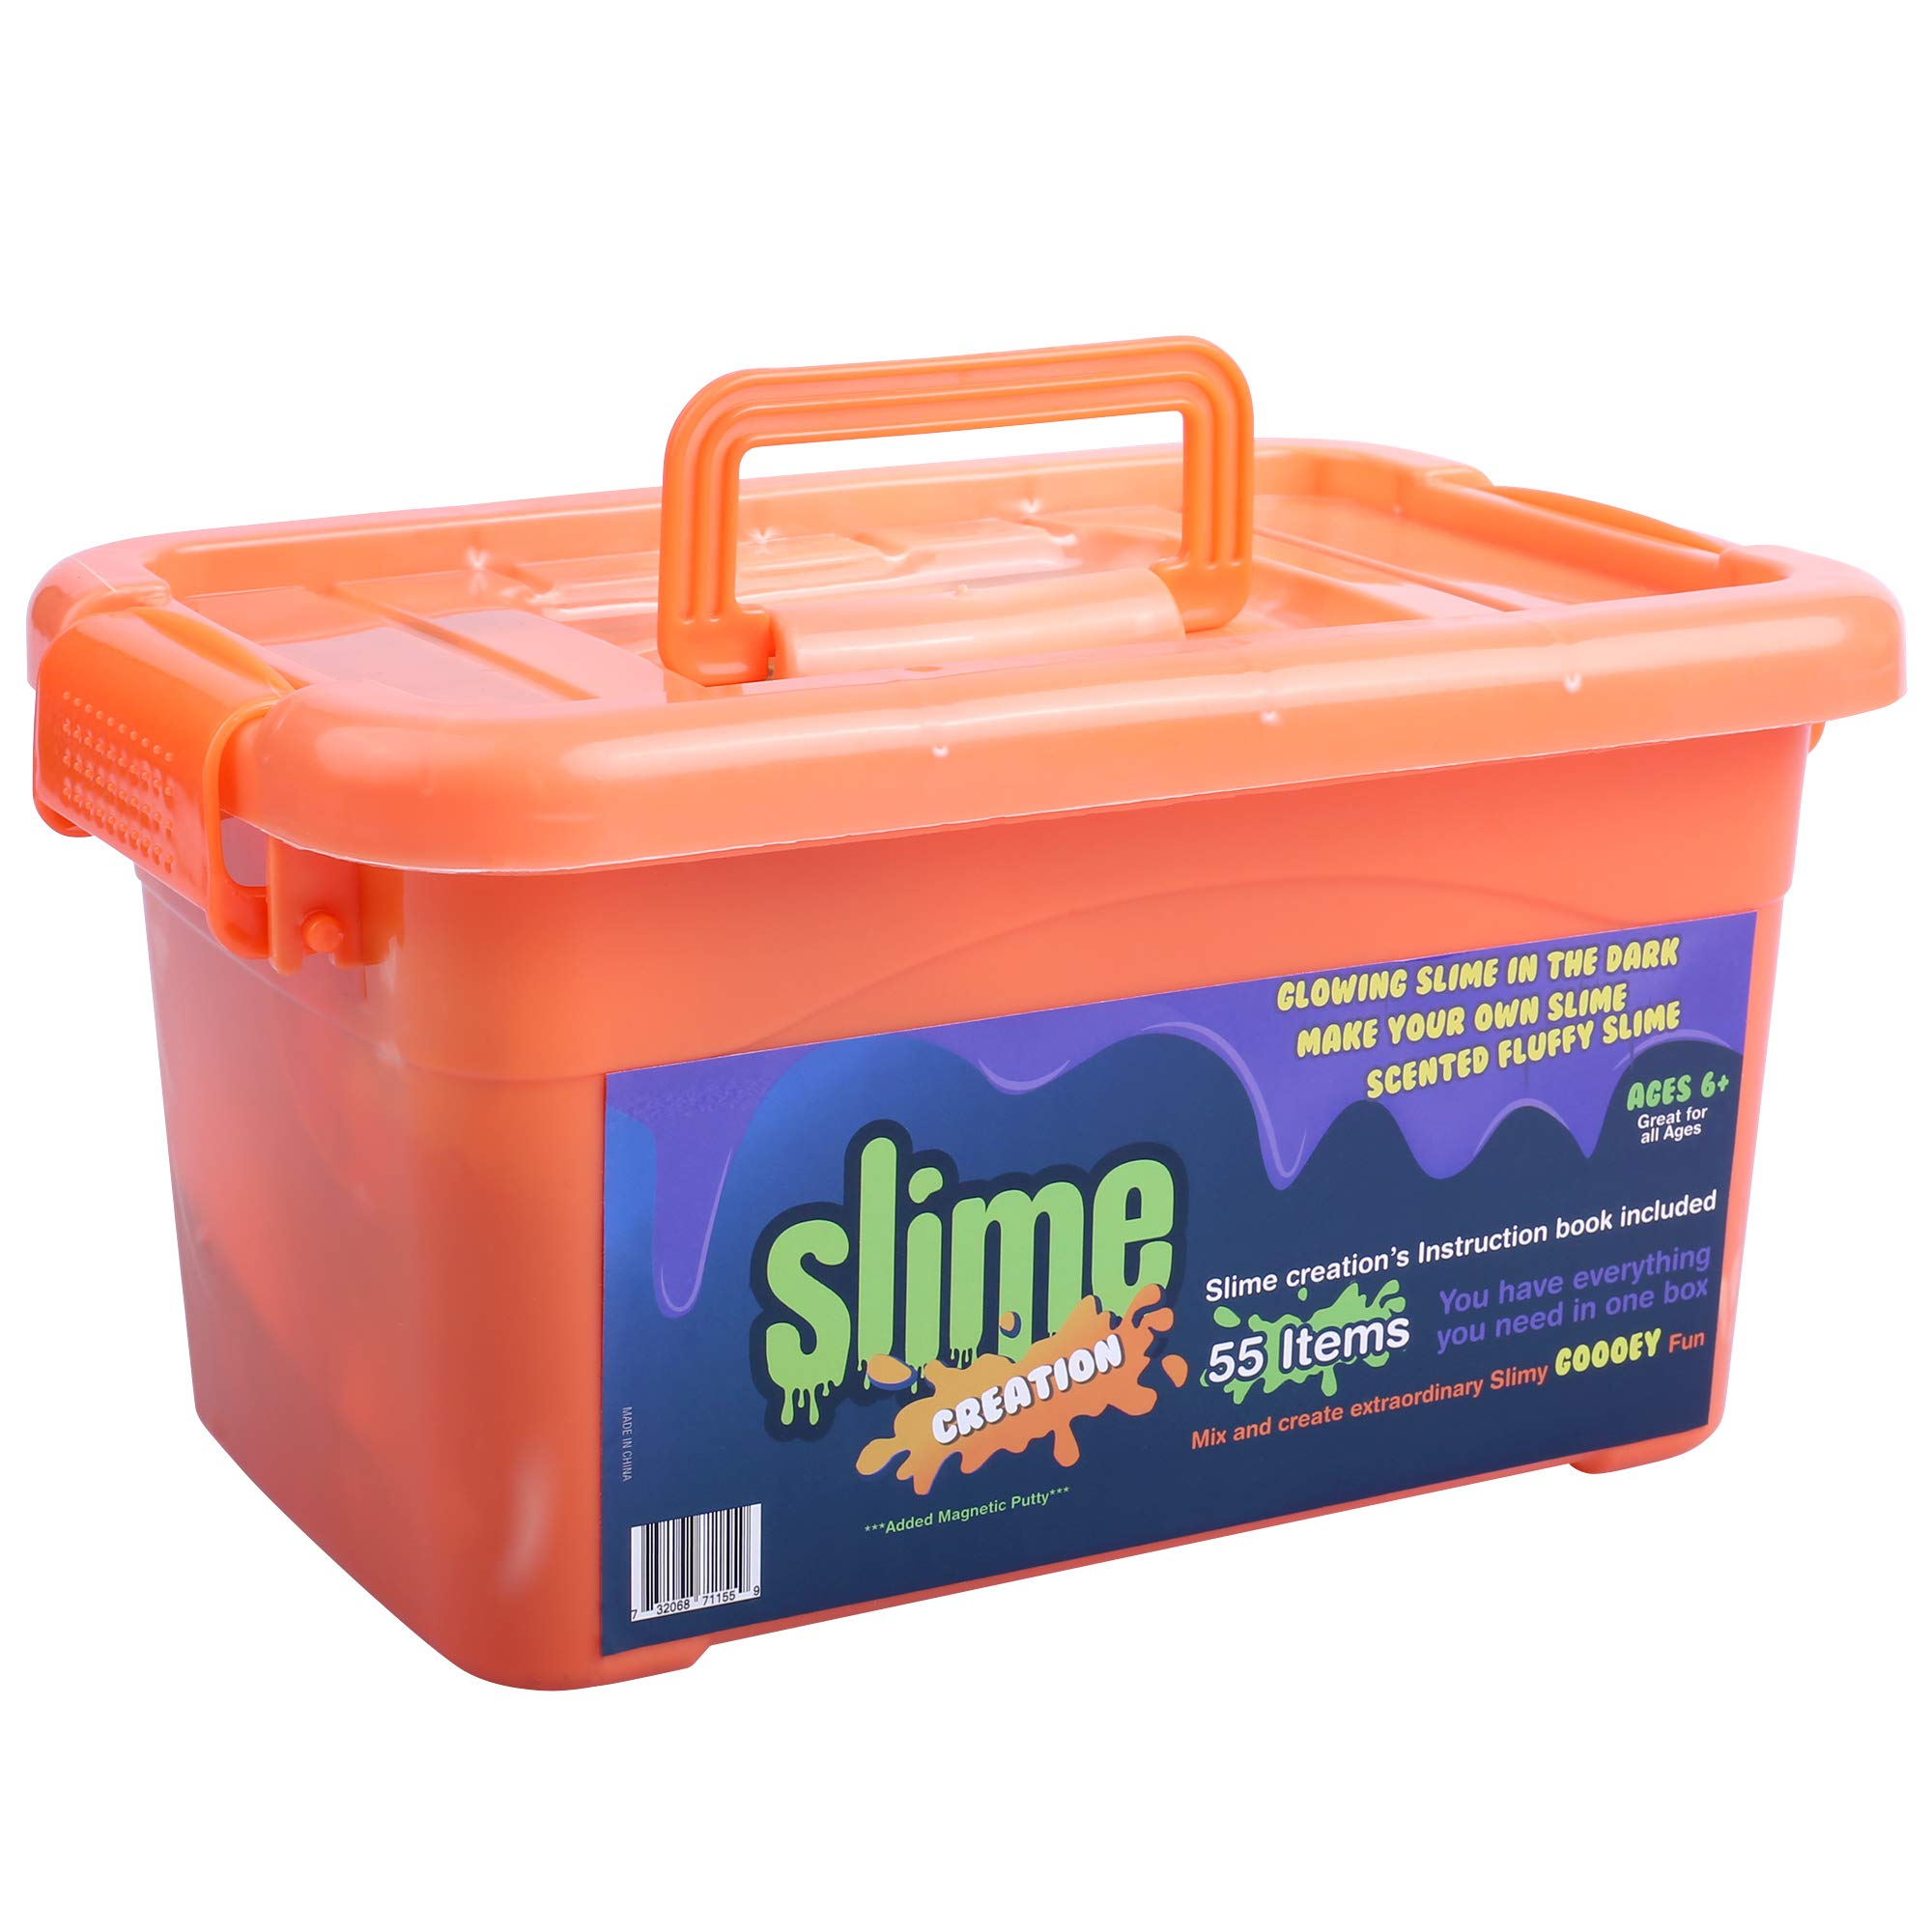 Slime Kit Supplies for Girls & Boys: 55 Piece DIY Kits for Kids with Activator Ingredients, Glue, Foam Beads, Glitter - Set with Everything for Making Fluffy, Clear, Rainbow, Magnetic & Scented Slimes by Slime Creation (Image #1)